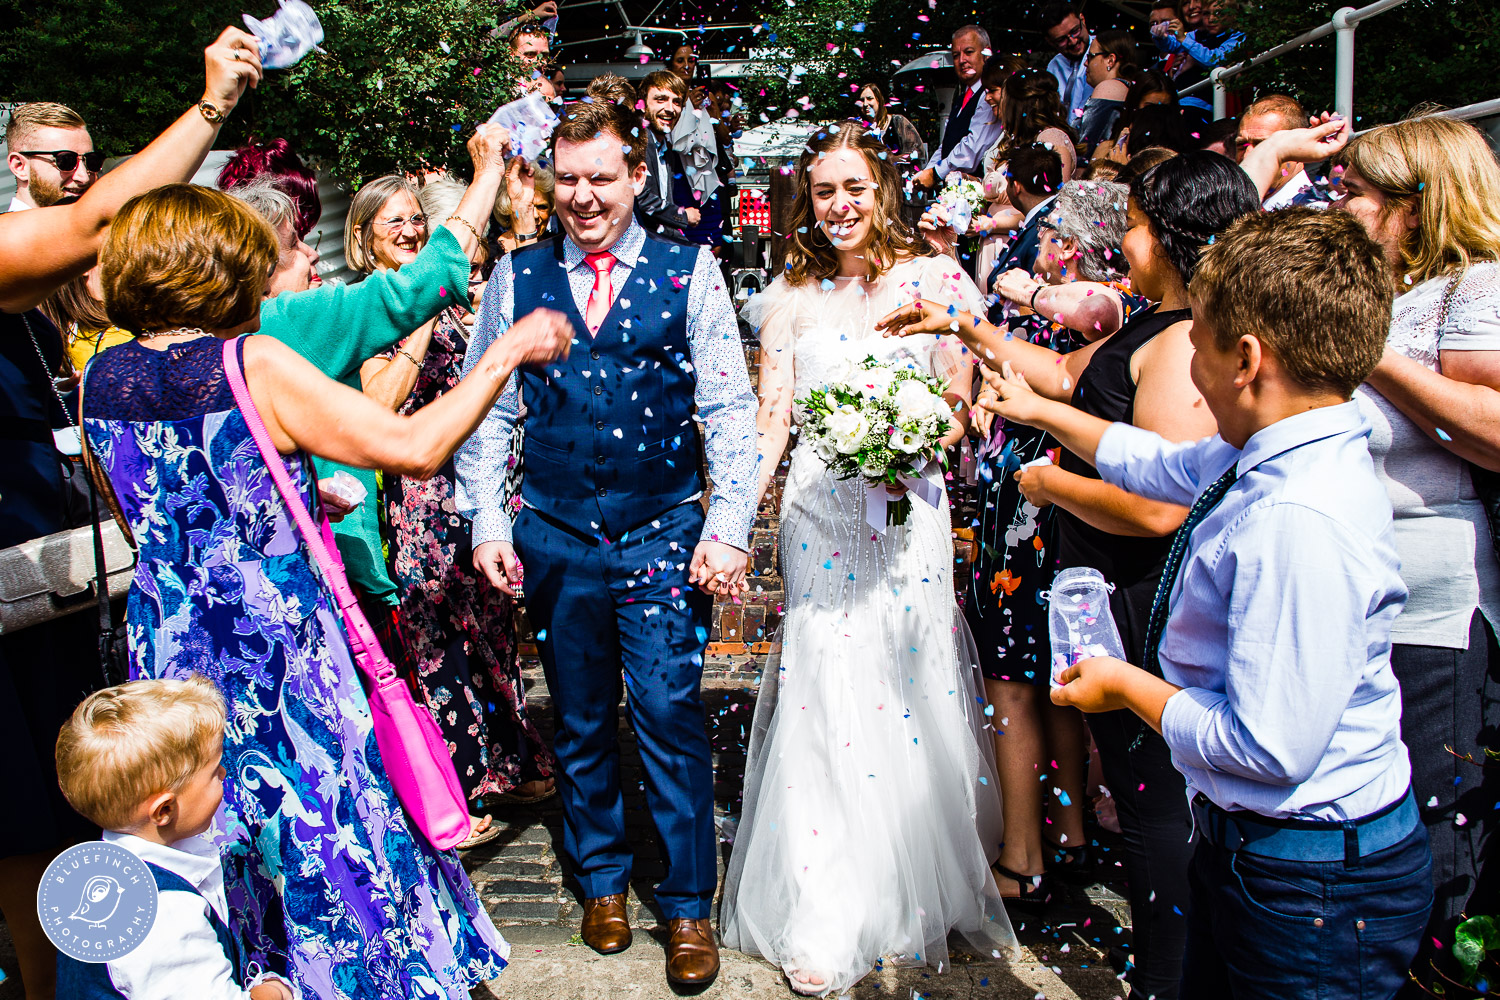 Daniel & Georgina's Wedding Photography At The Bond Digbeth